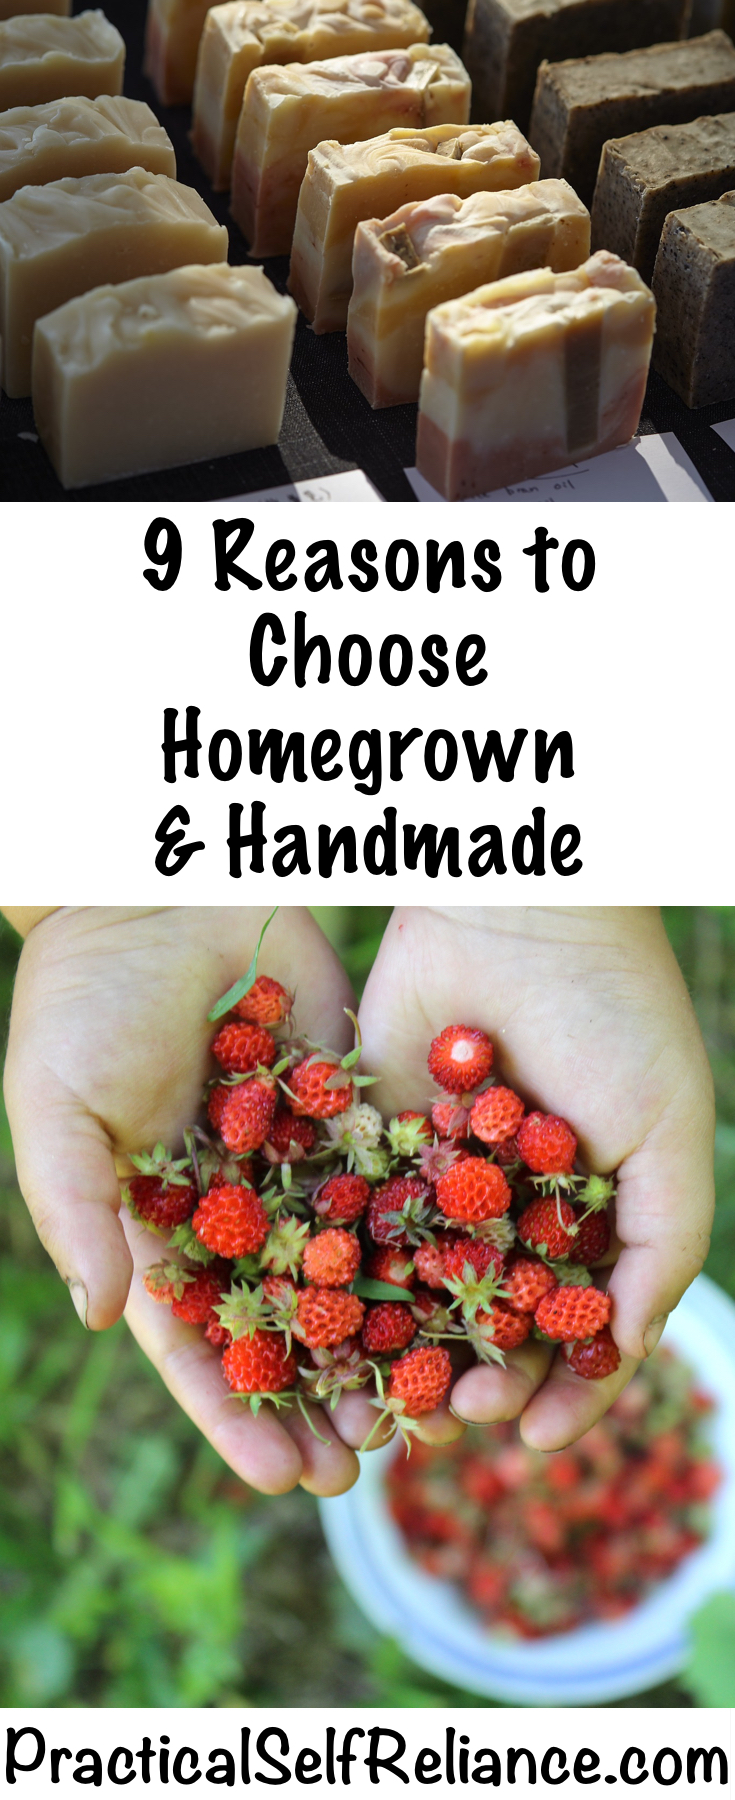 9 Reasons to Choose a Homegrown and Handmade Life